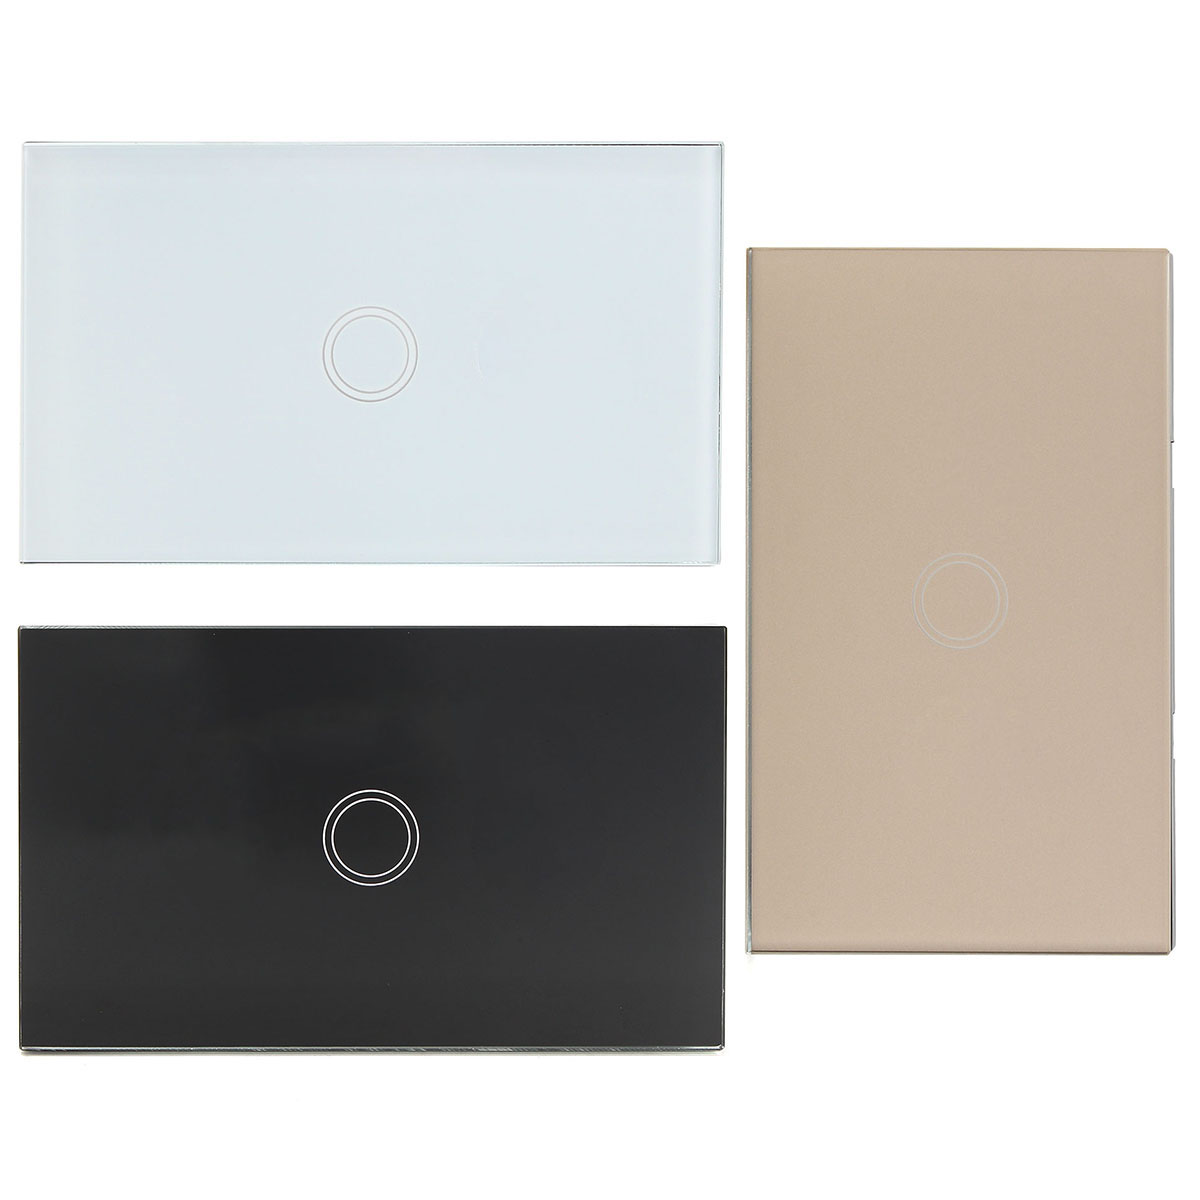 1 Way 1 Gang Crystal Glass Remote Panel Touch LED Light Switches Controller